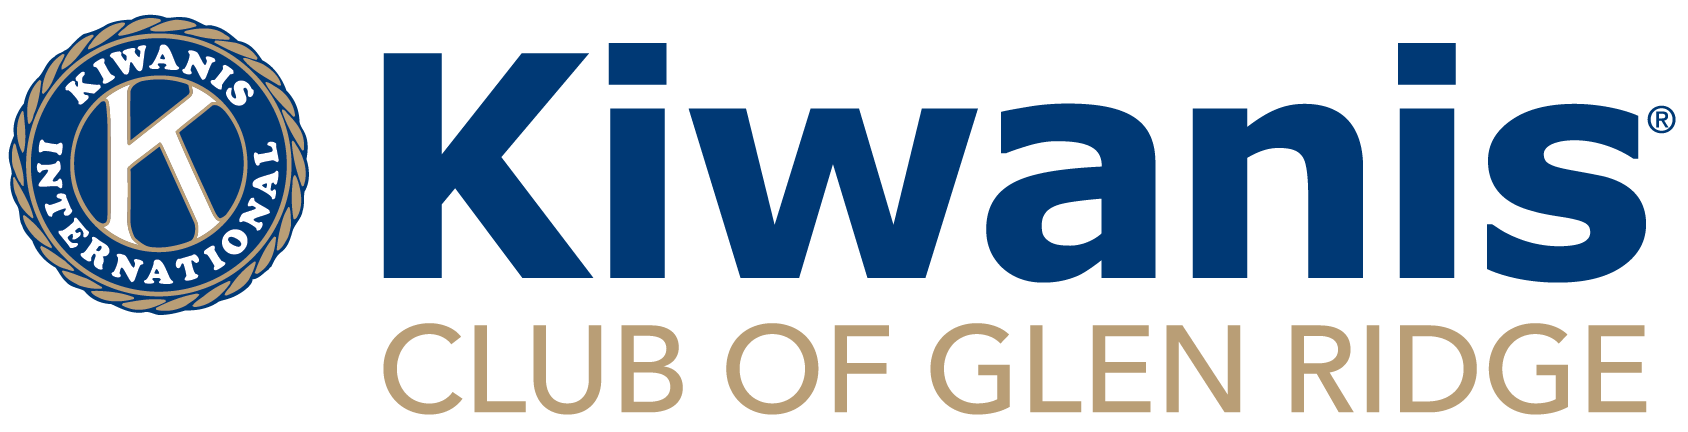 Kiwanis Club of Glen Ridge